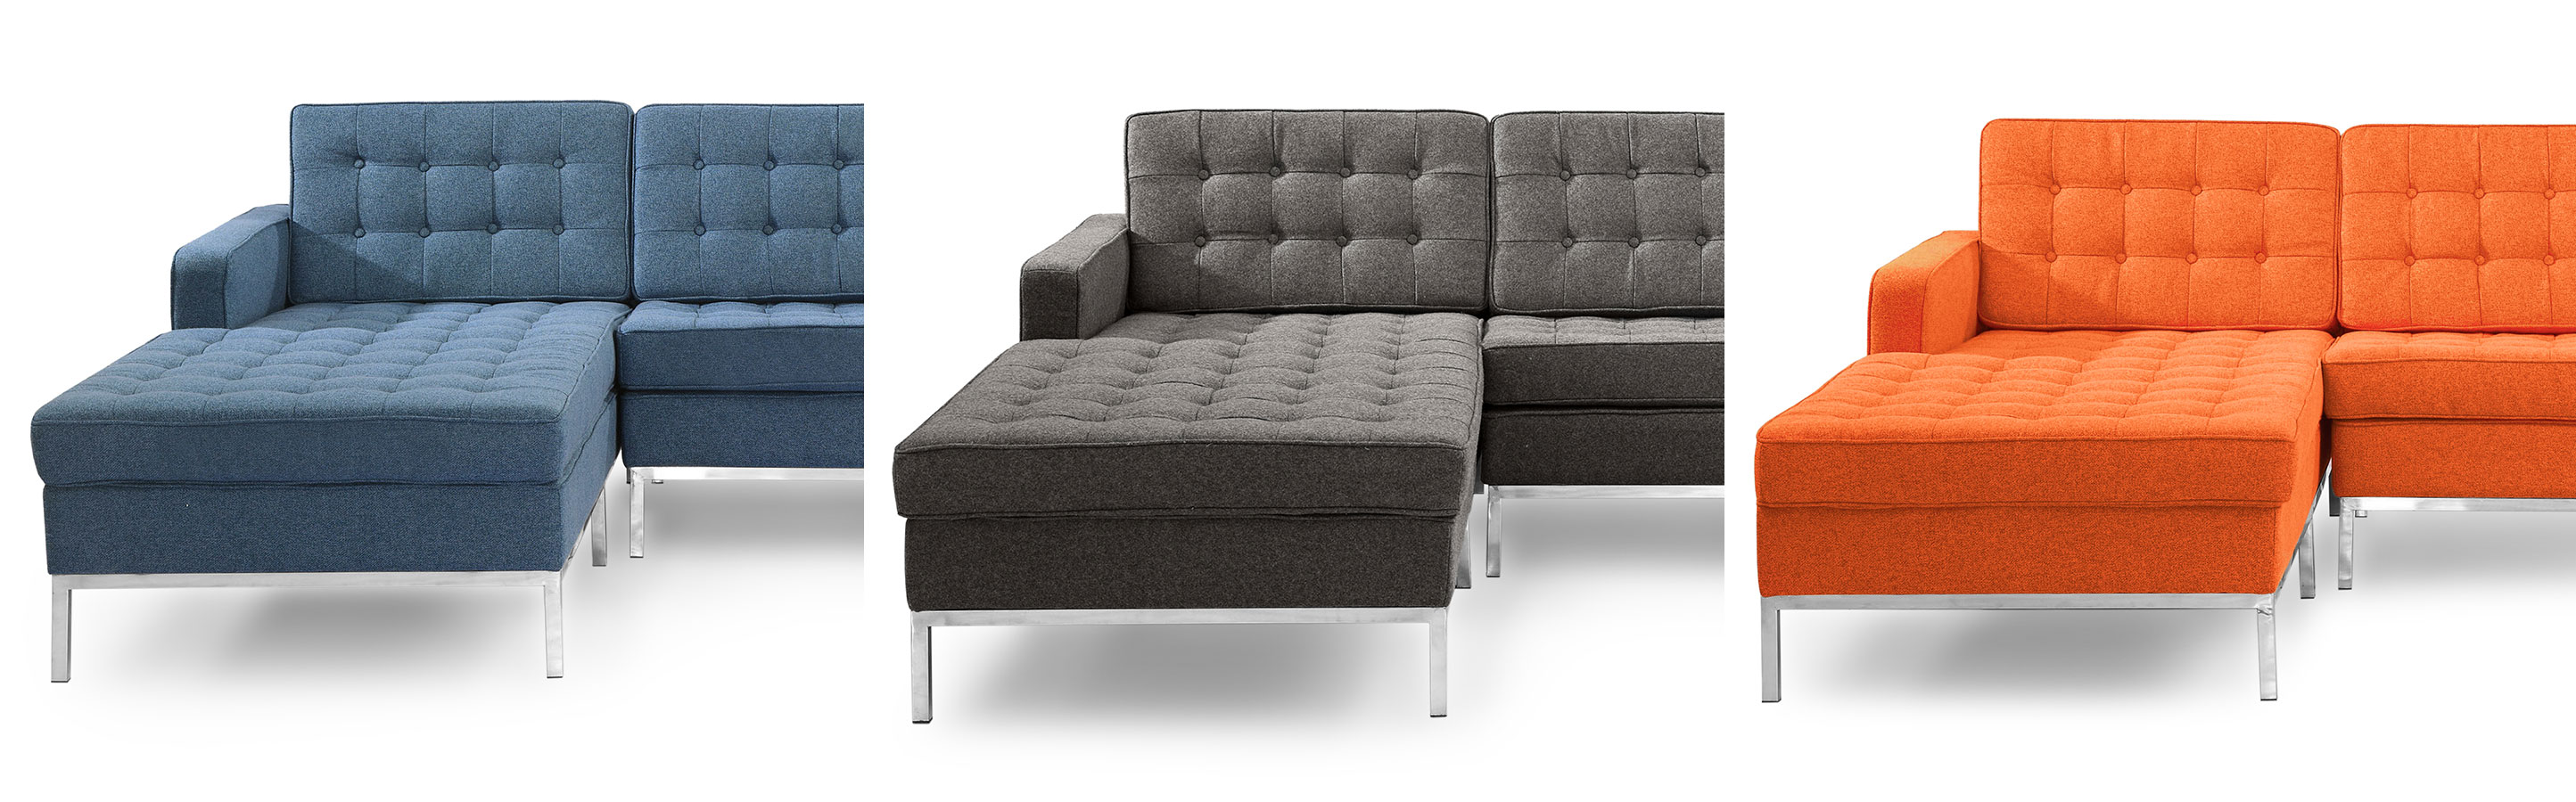 Cubix modern tufted chaise sofa sectional for Florence modern sectional sofa